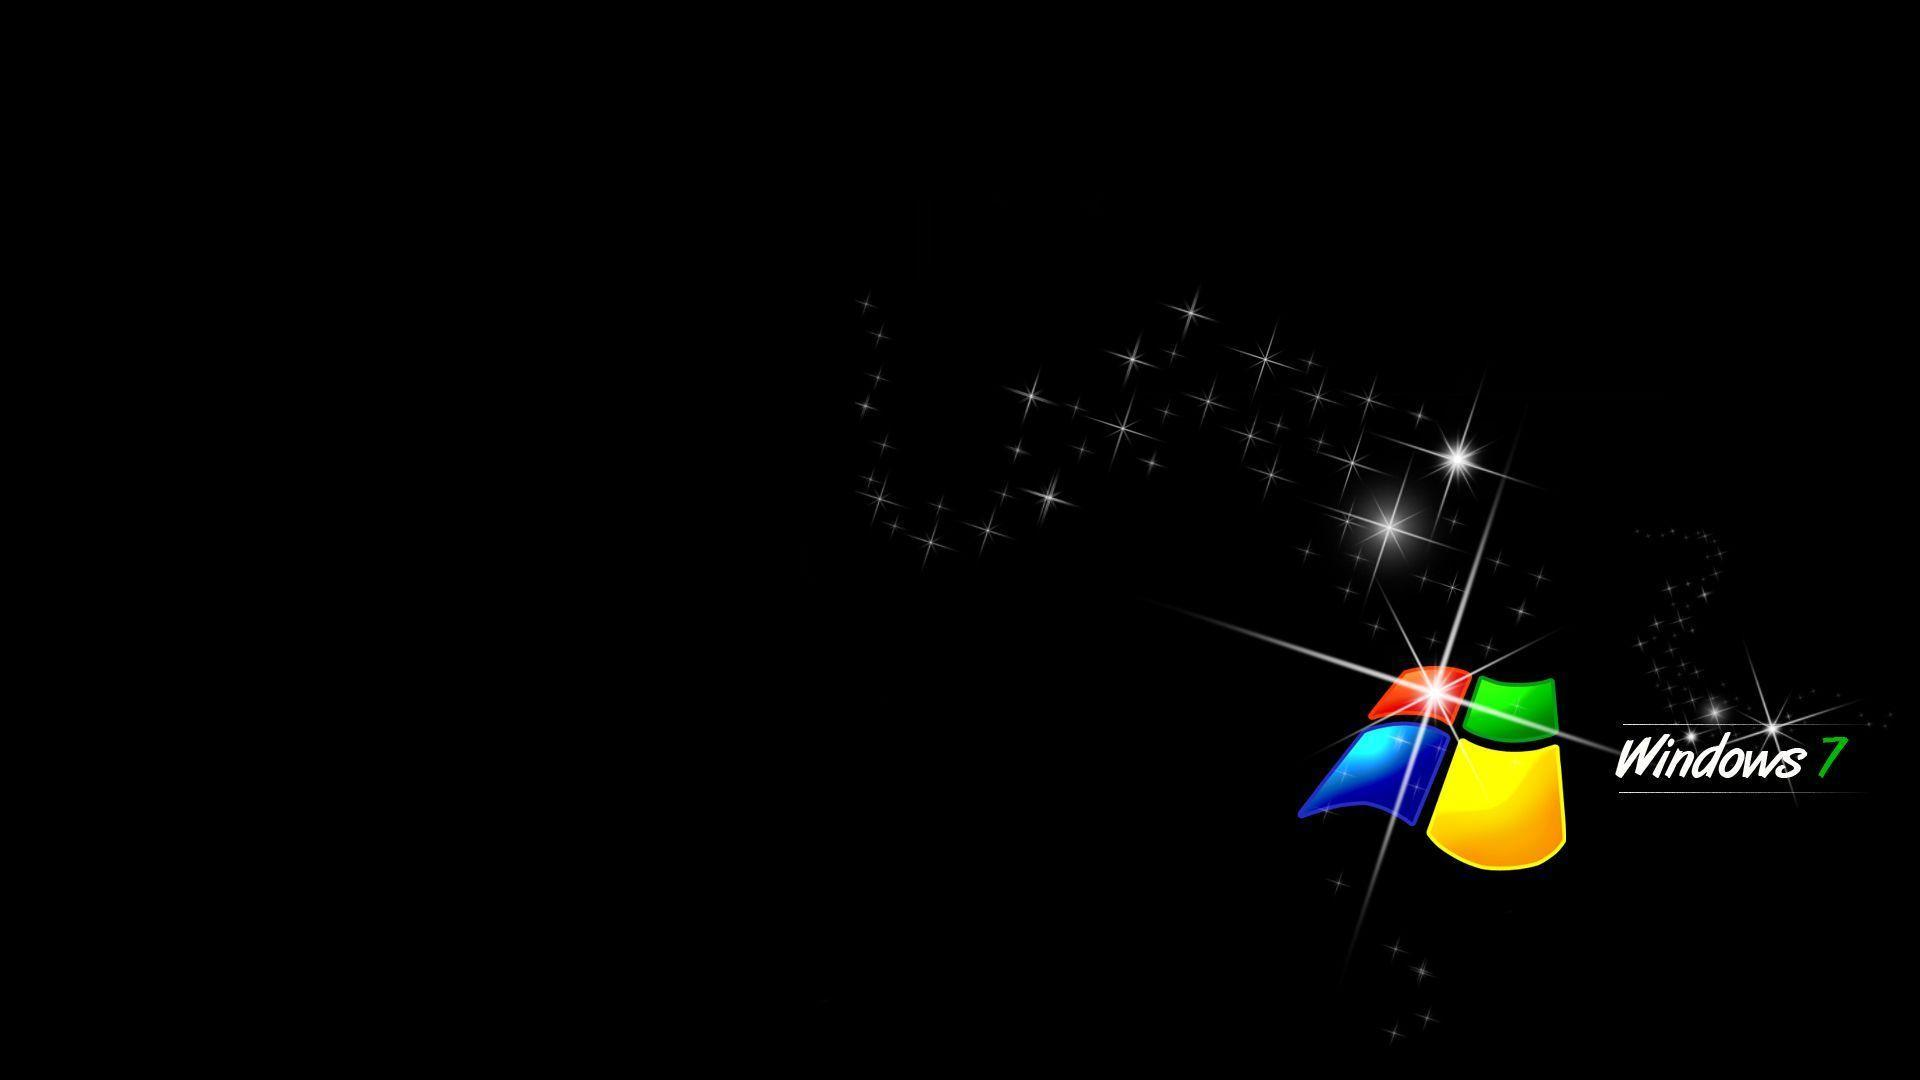 Black windows - Black Windows 7 Wallpaper Ahd Images